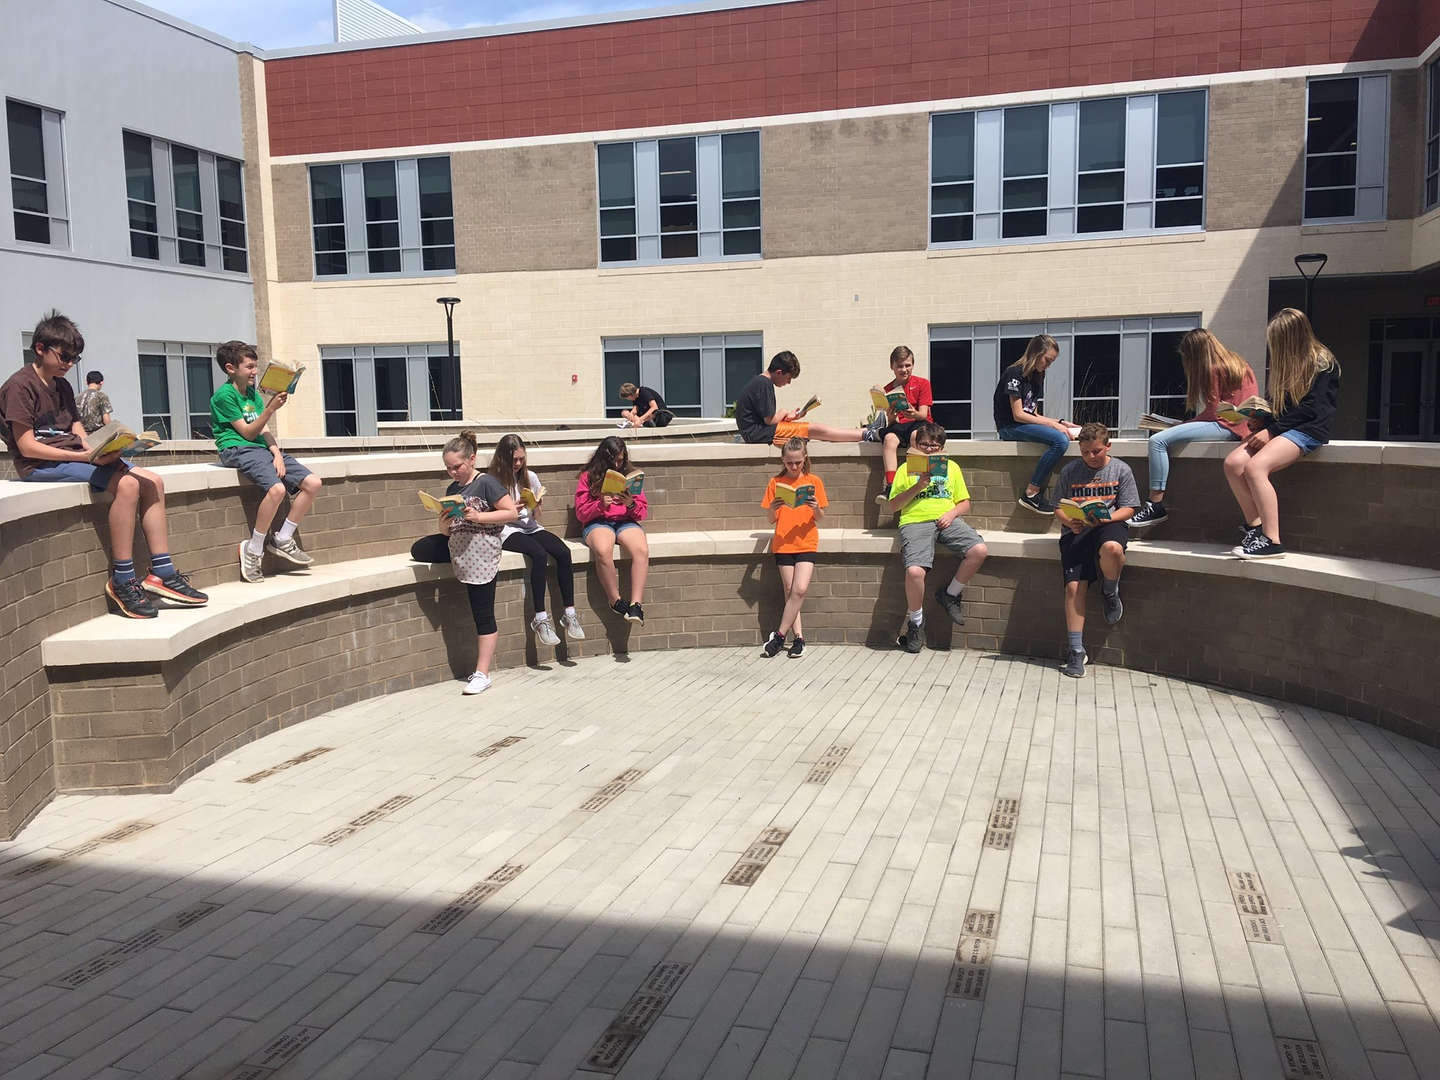 Students reading in courtyard